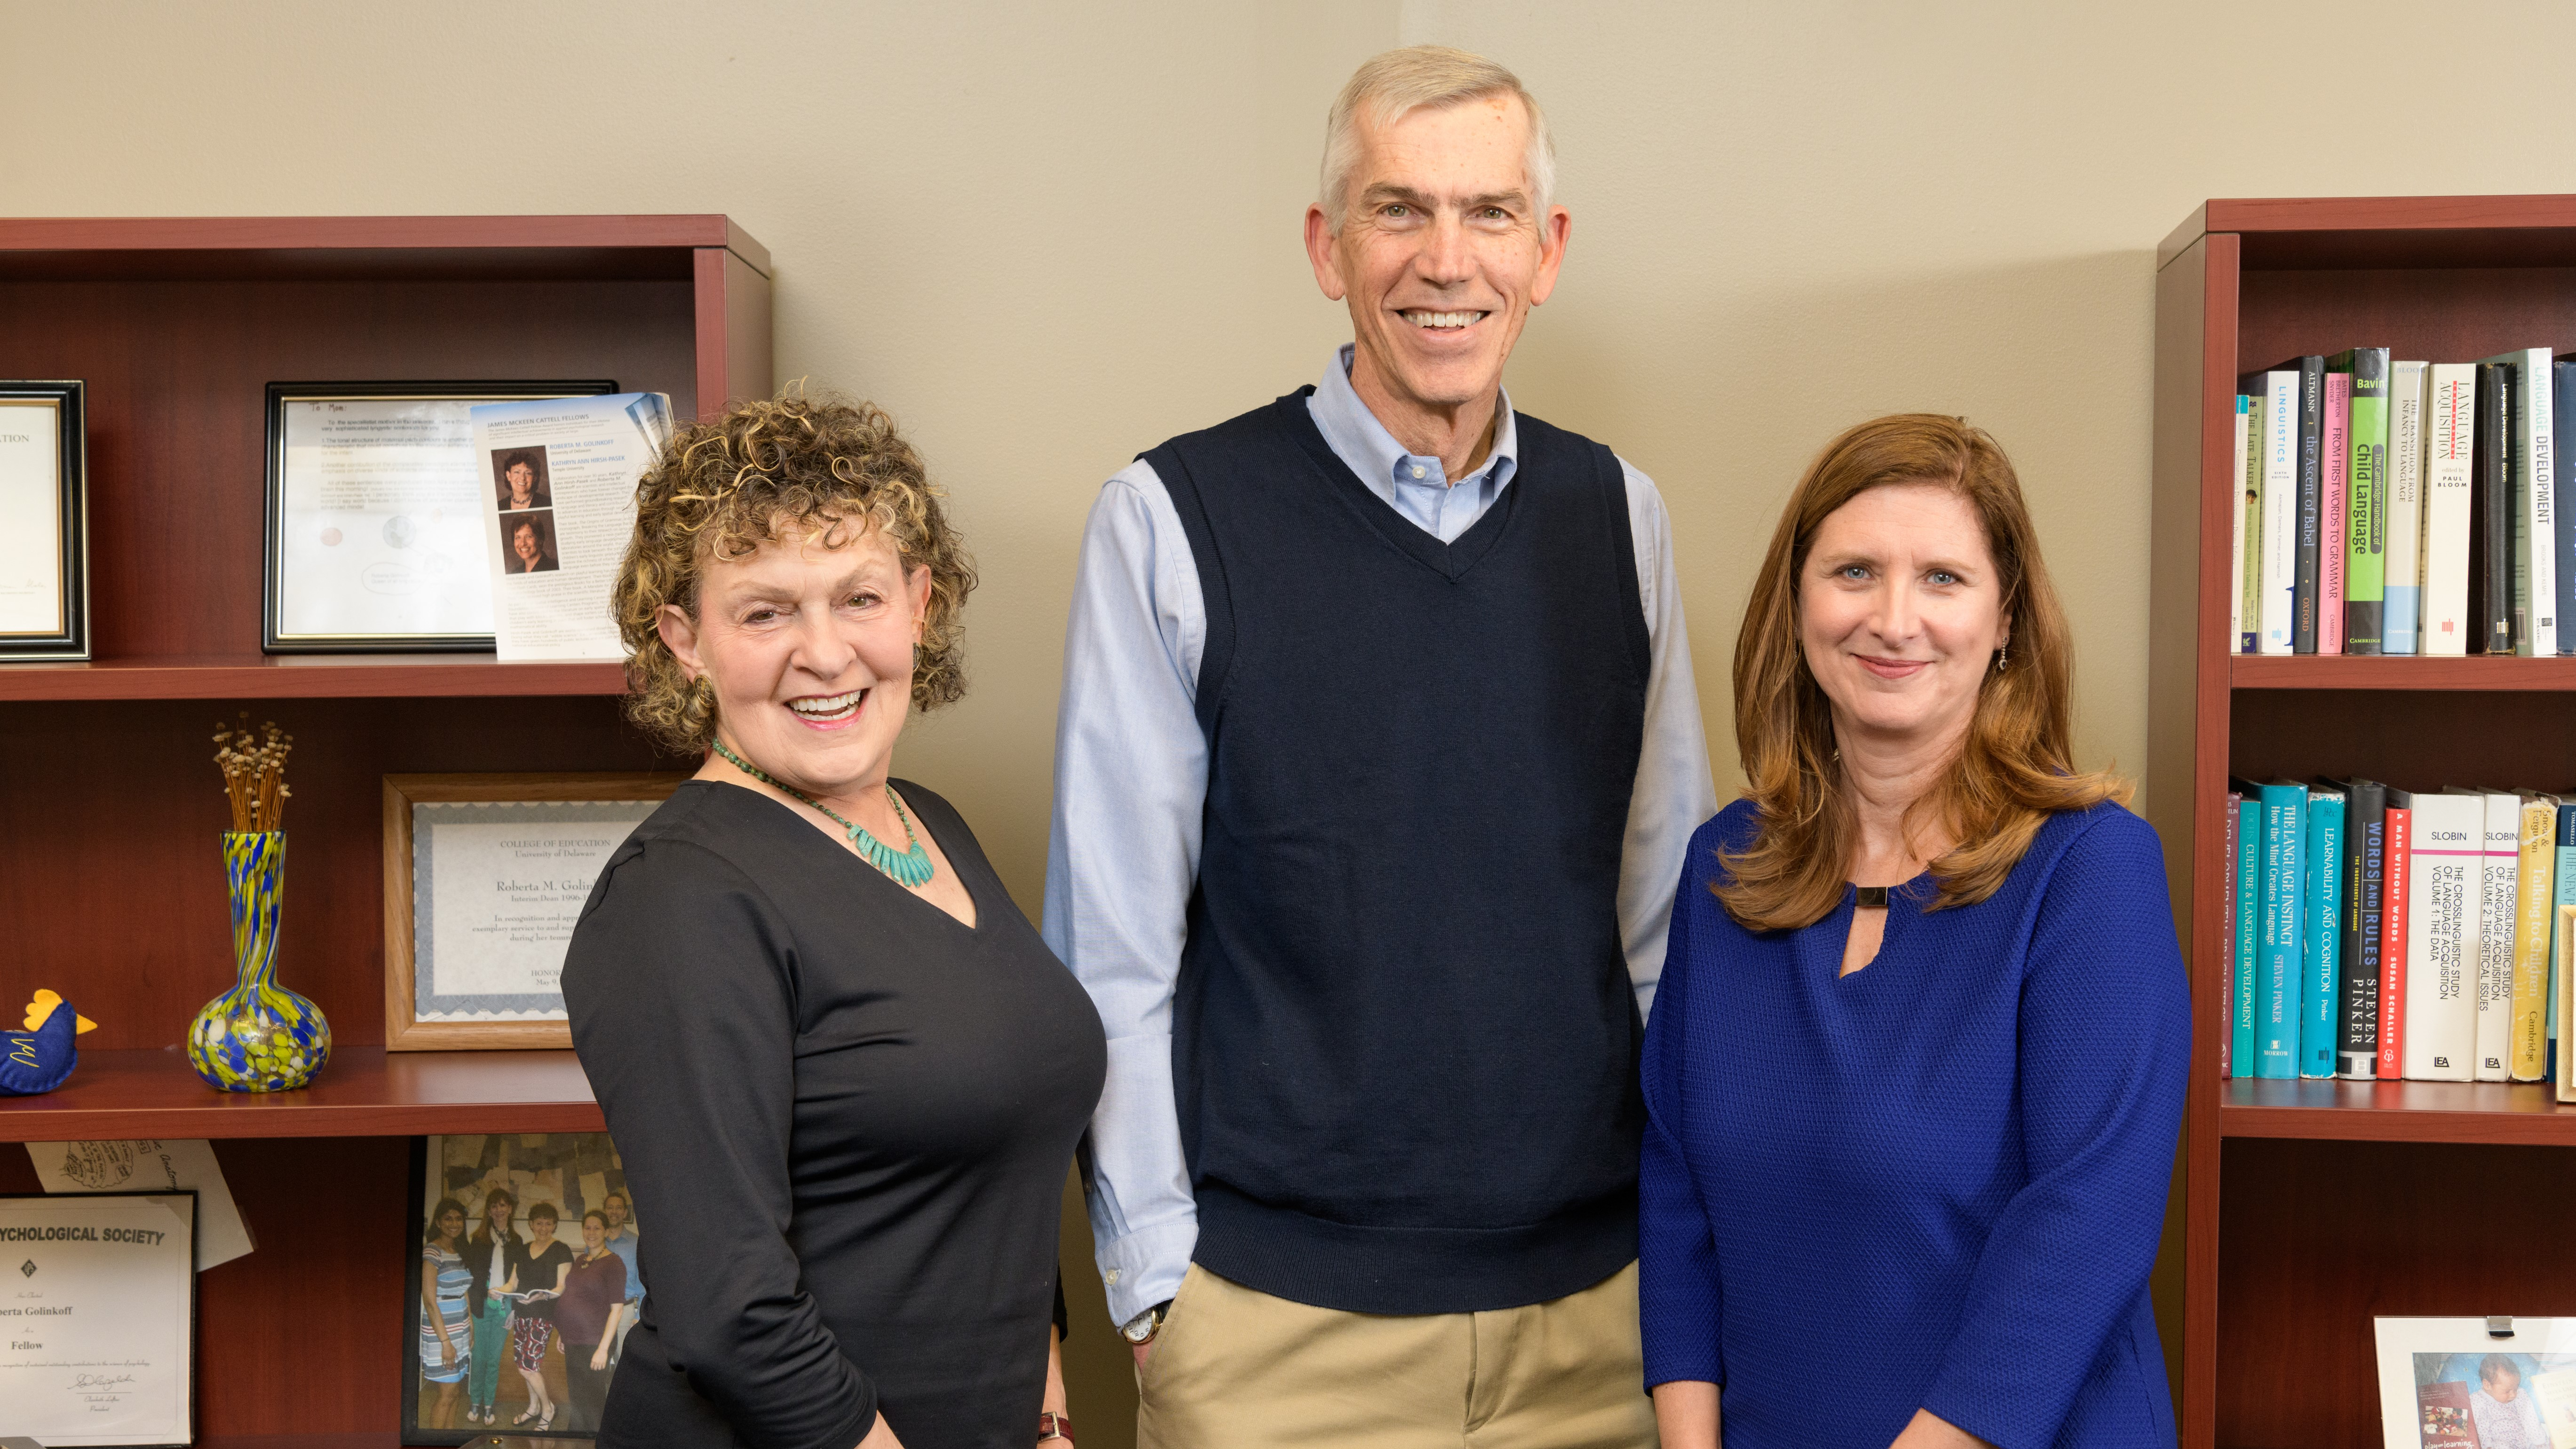 Three University of Delaware School of Education professors are 2019 AERA Fellows. From left to right: Roberta Golinkoff, James Hiebert, and Laura Desimone. They stand in front of bookshelves in one of their UD offices.